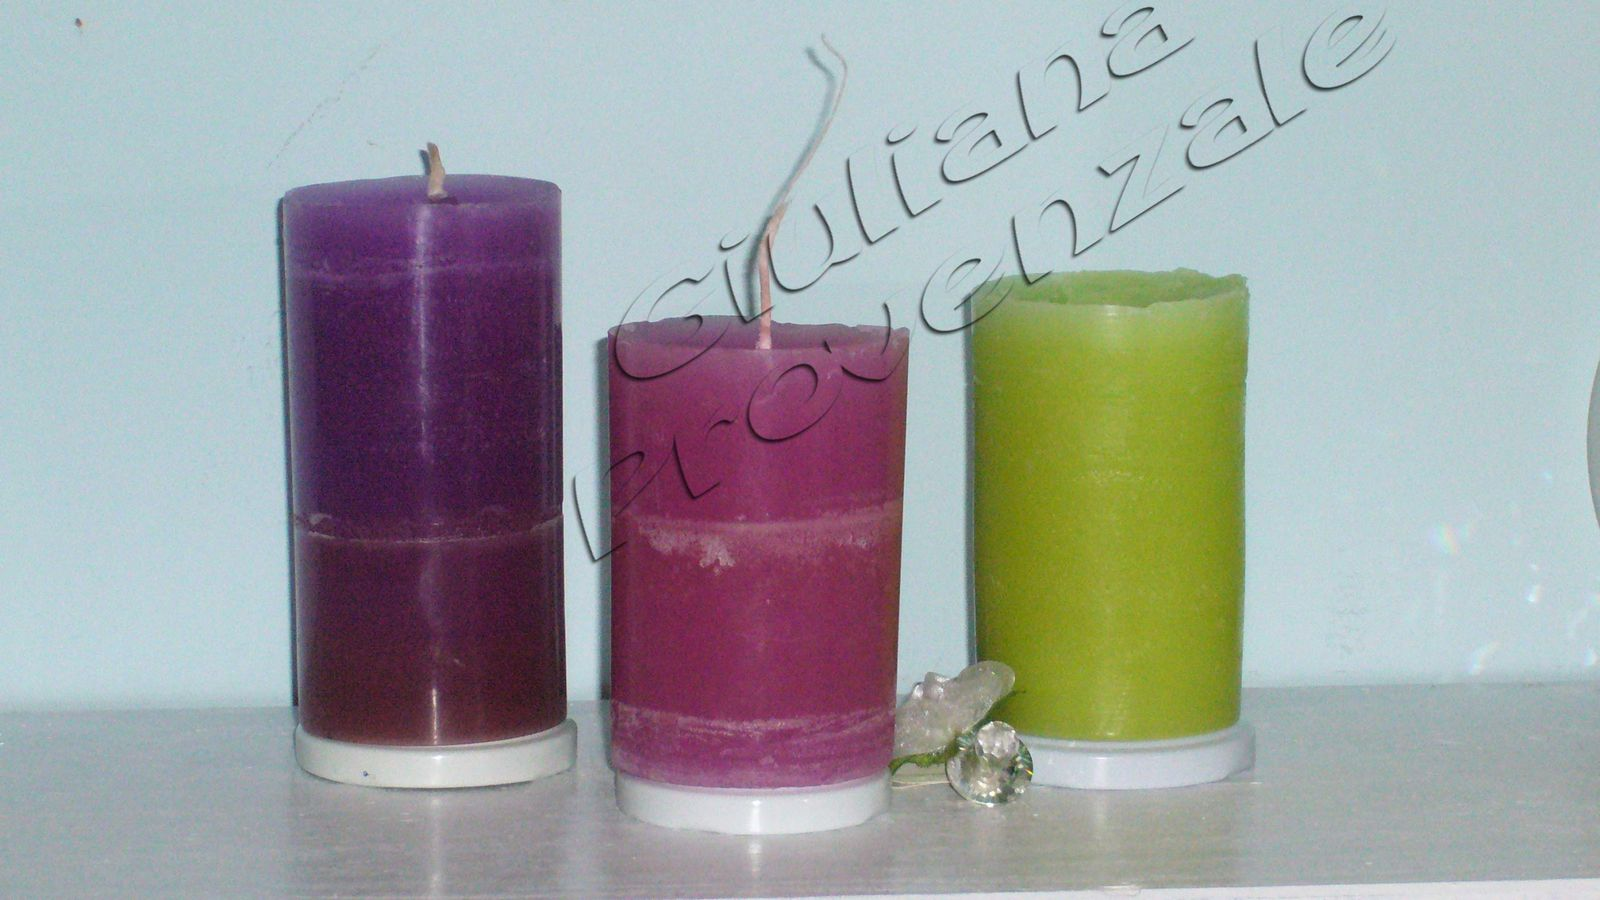 Candele in casa 28 images come fare delle candele xn94 187 regardsdefemmes come fare - Fare le candele in casa ...